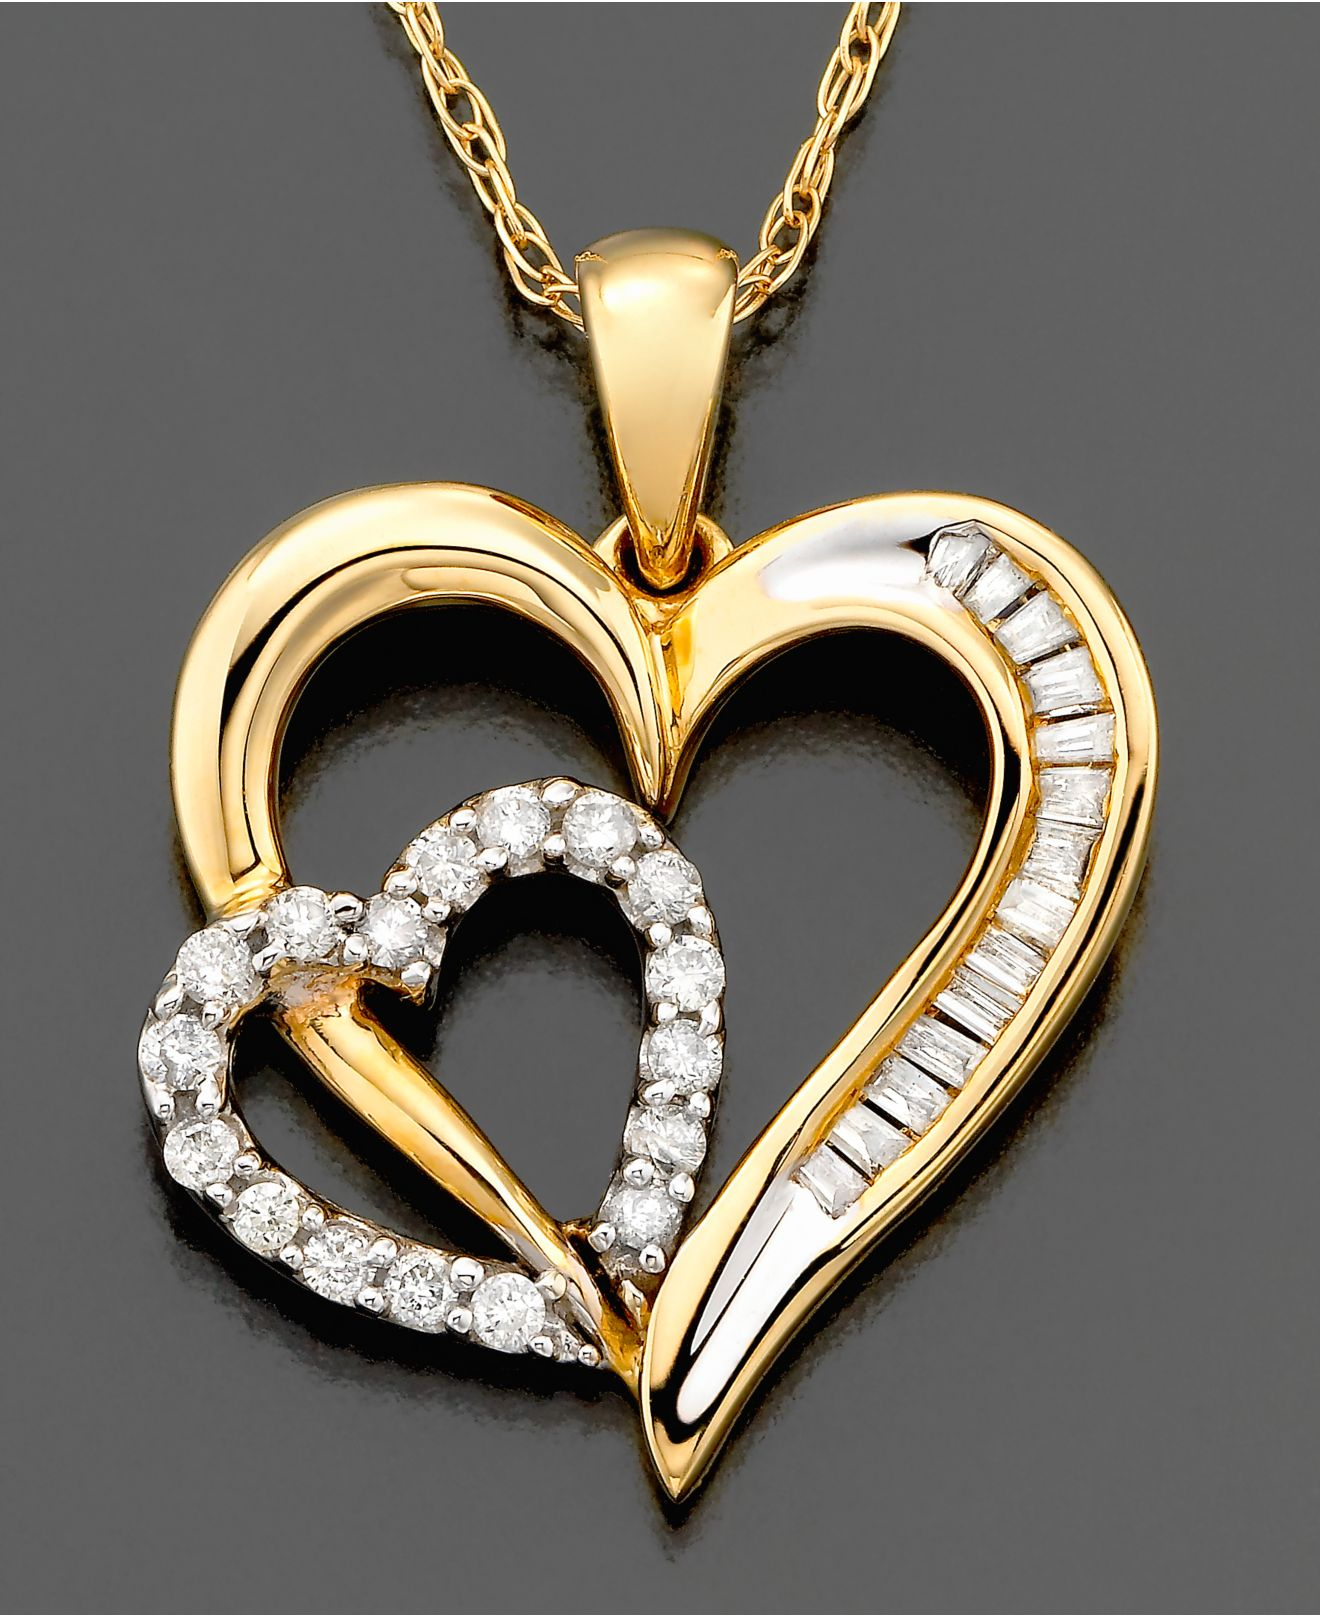 Lyst macys diamond heart pendant necklace in 14k gold 15 ct gallery mozeypictures Gallery